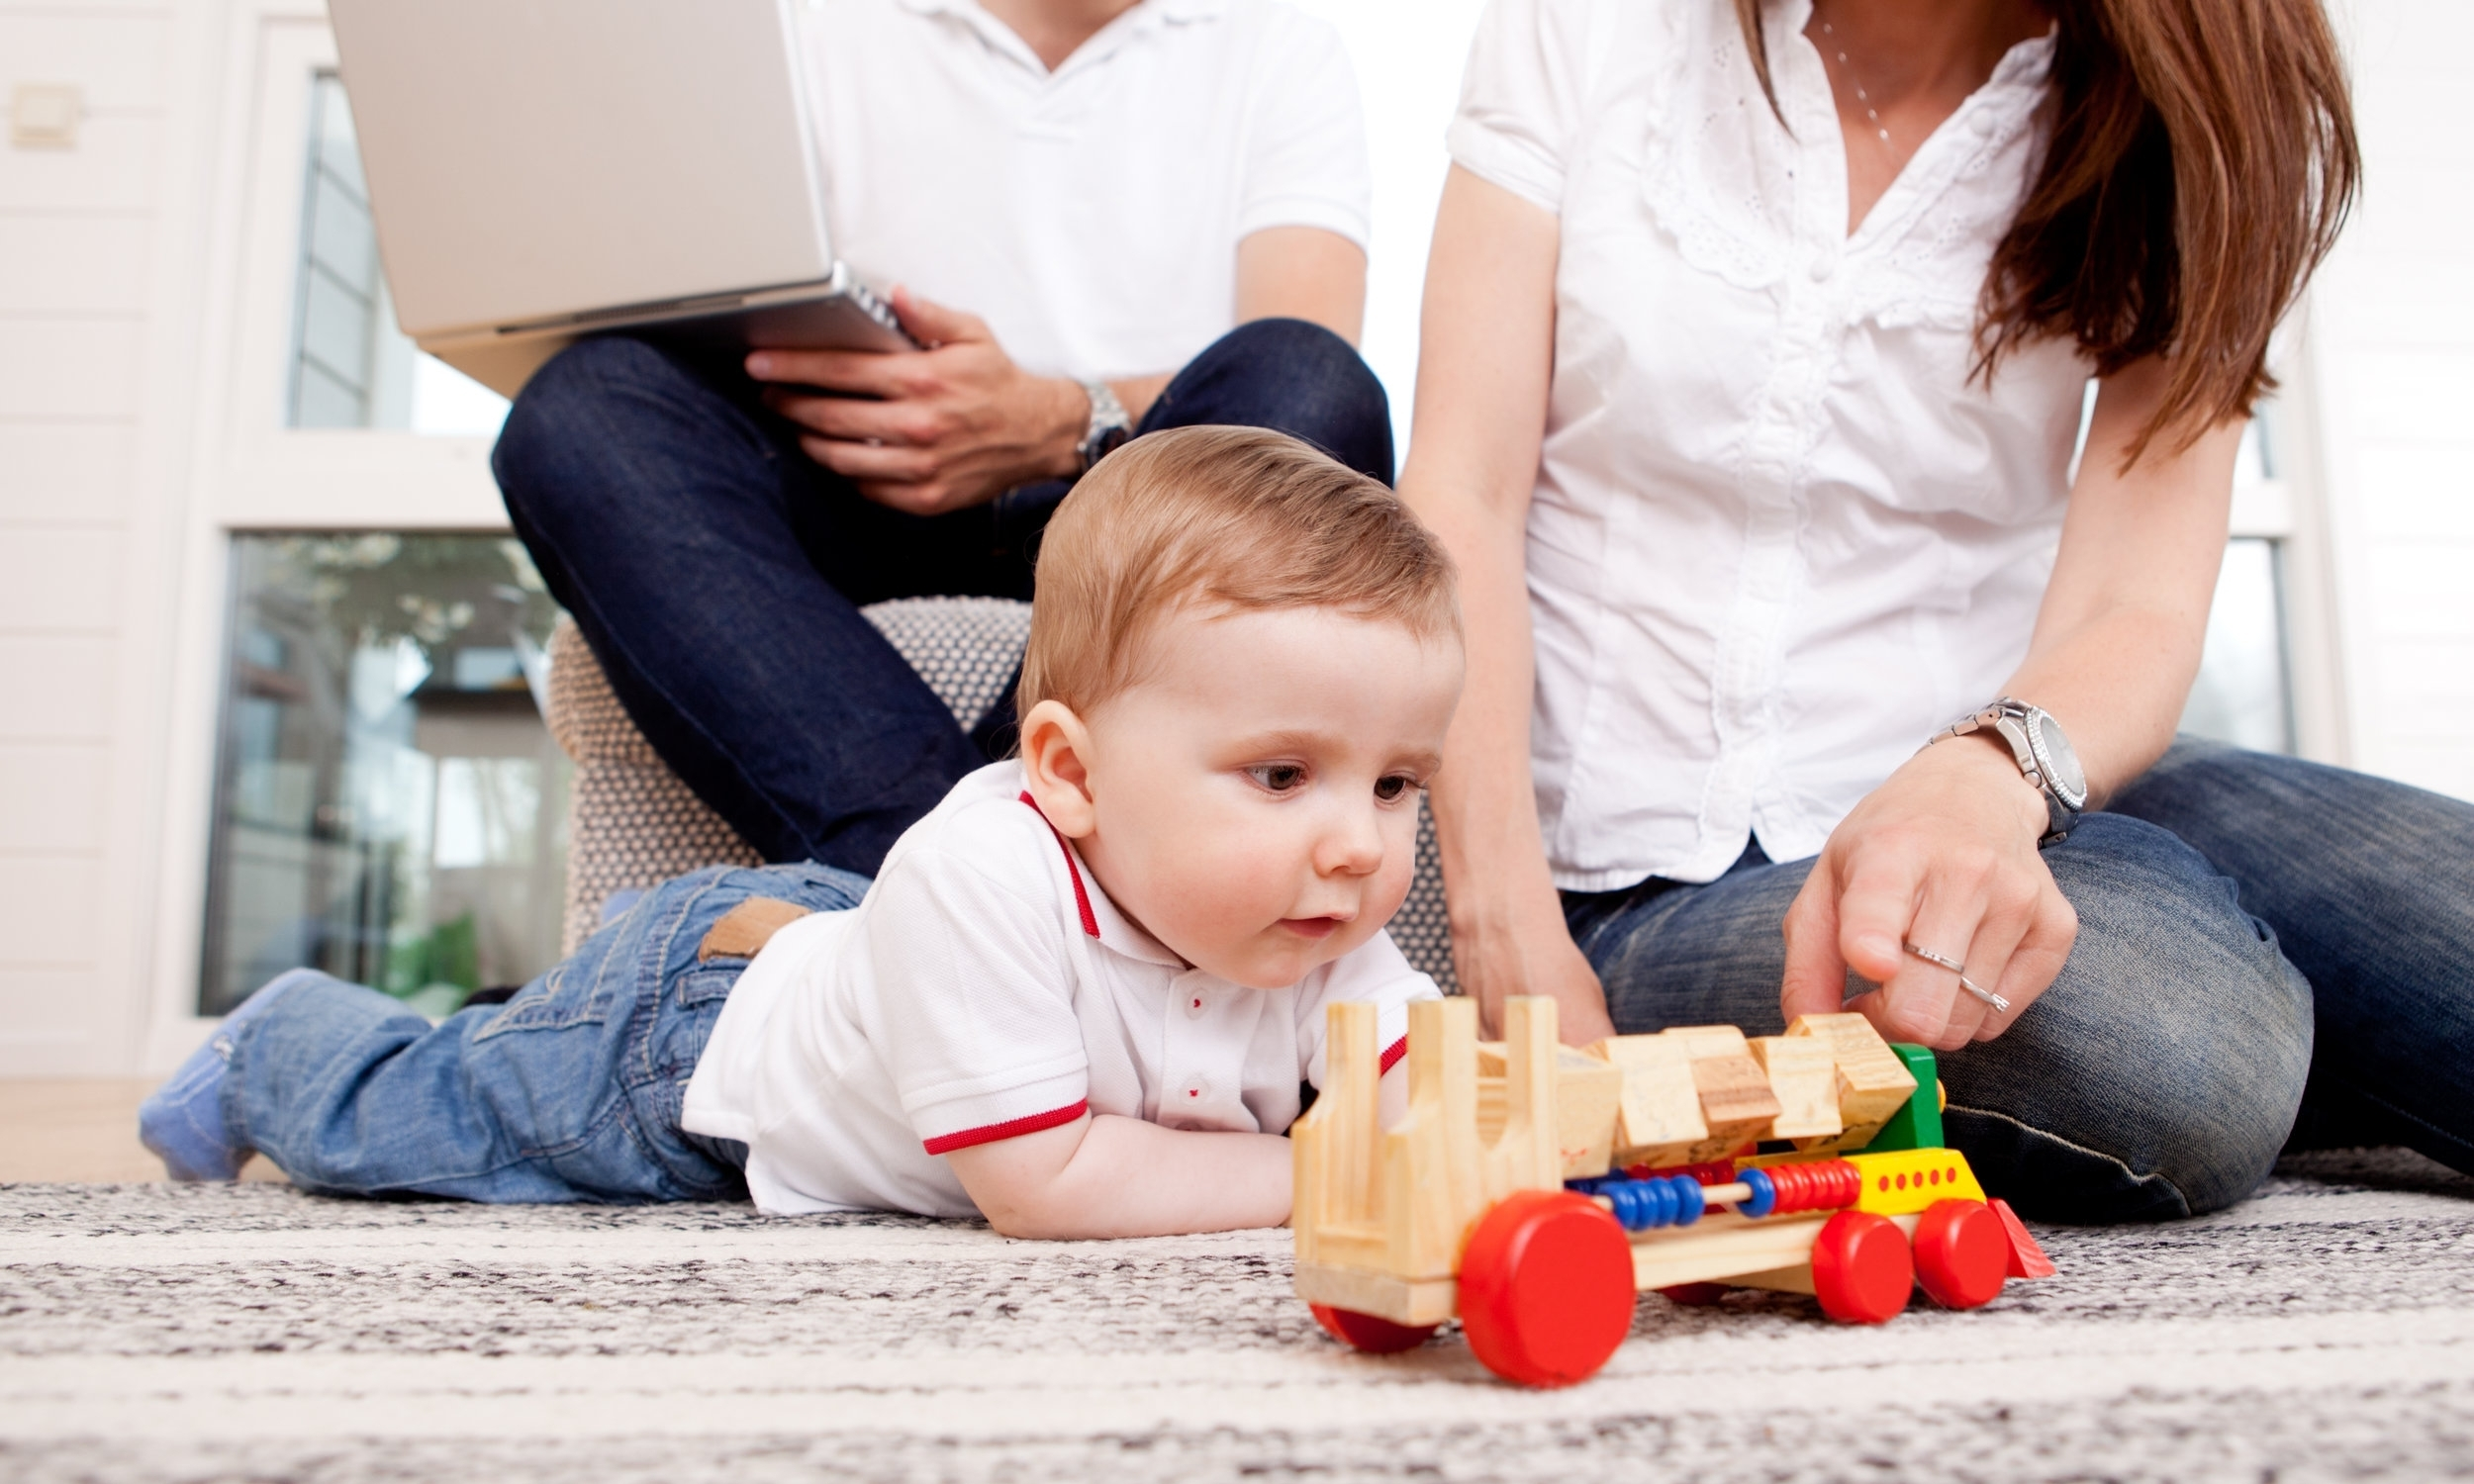 Children's Language Learning in Five Words -